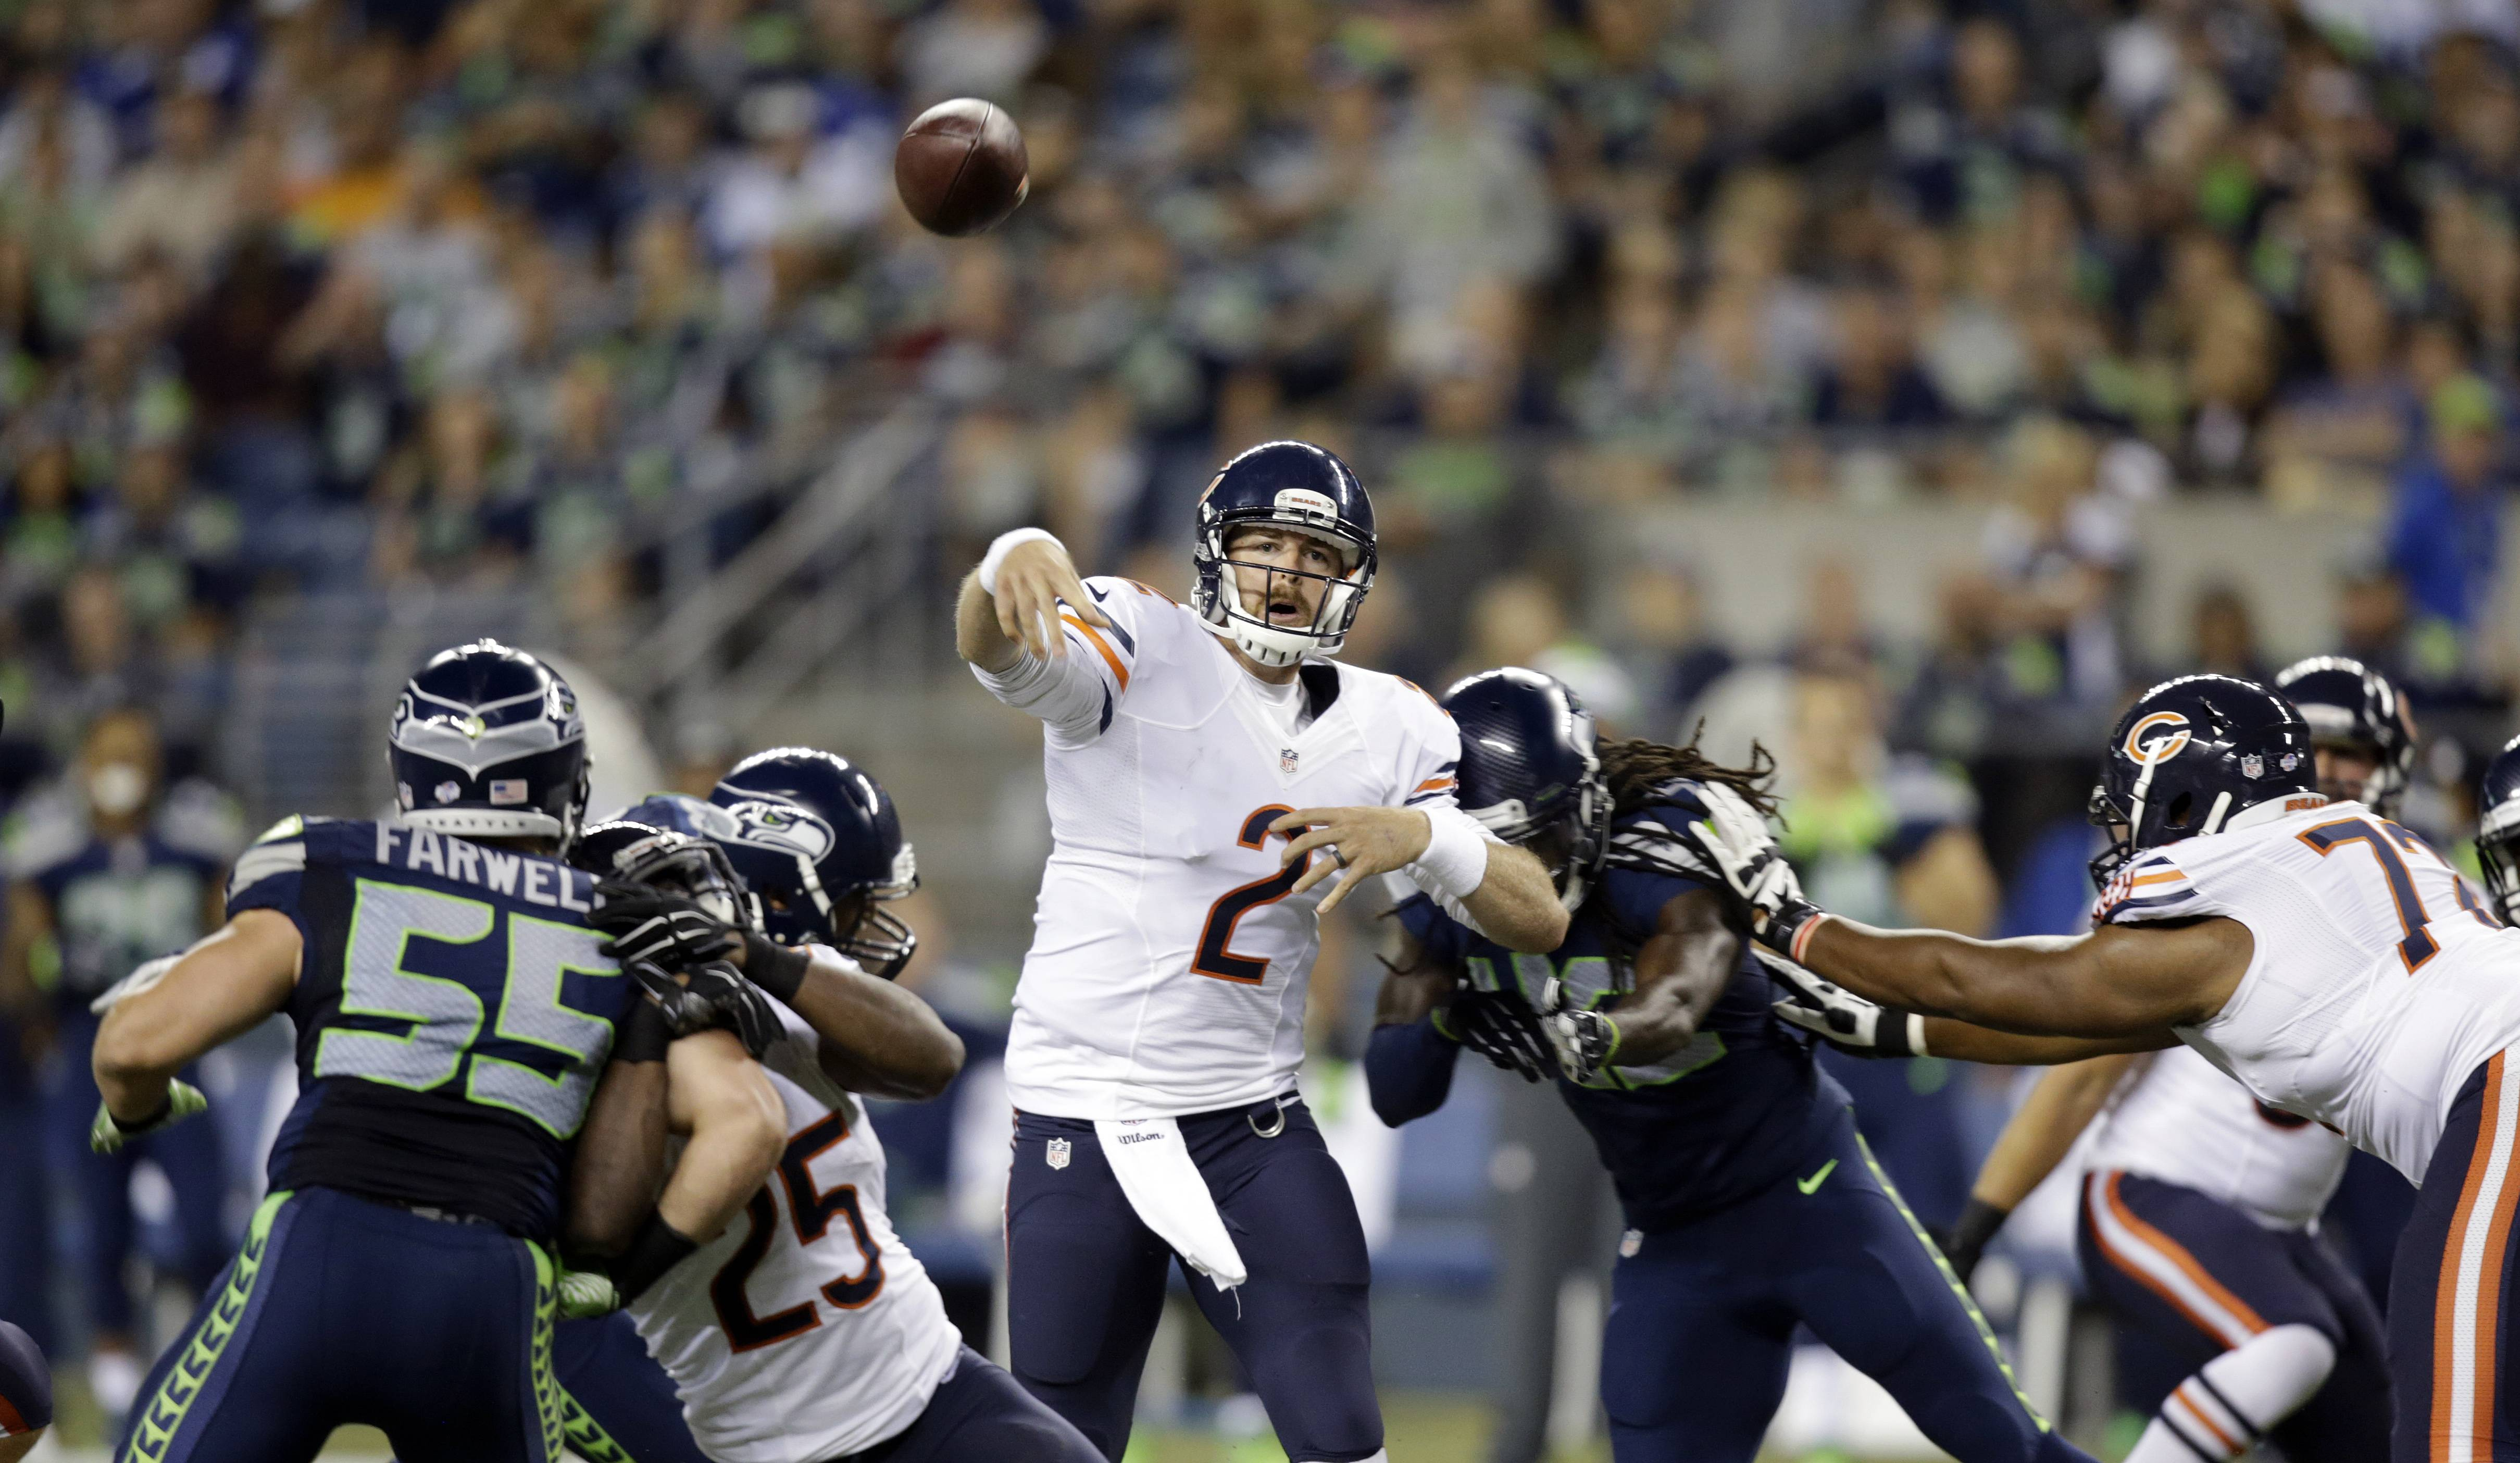 Chicago Bears quarterback Jordan Palmer (2) throws against the Seattle Seahawks in the second half of an preseason NFL football game, Friday, Aug. 22, 2014, in Seattle.